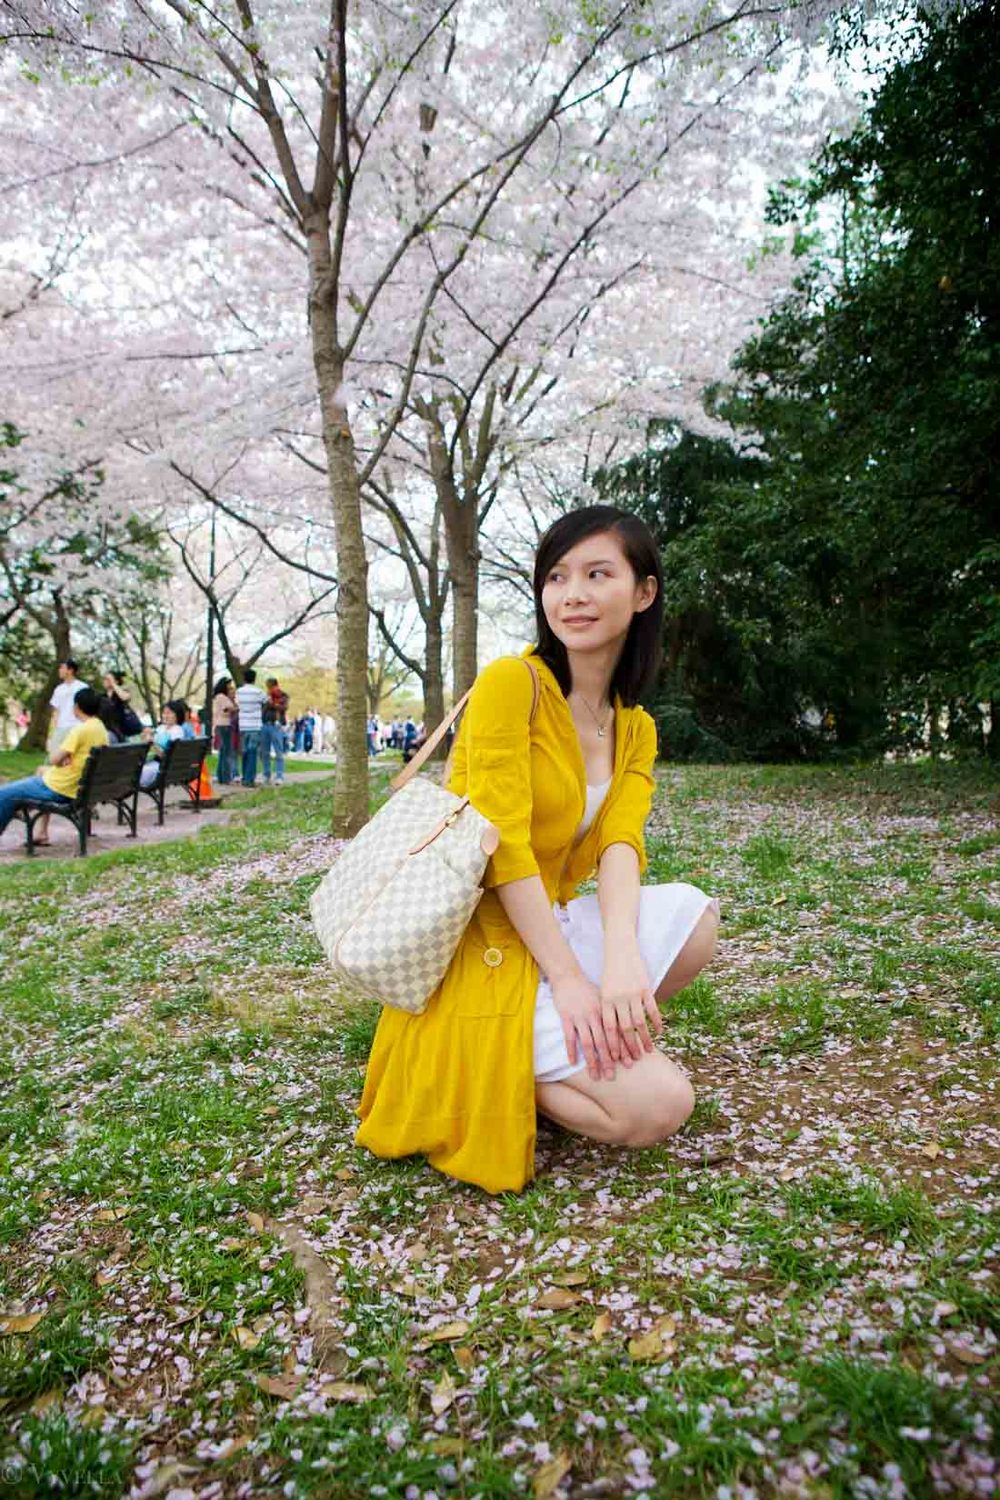 travel_cherry-blossom-and-youth_11.jpg